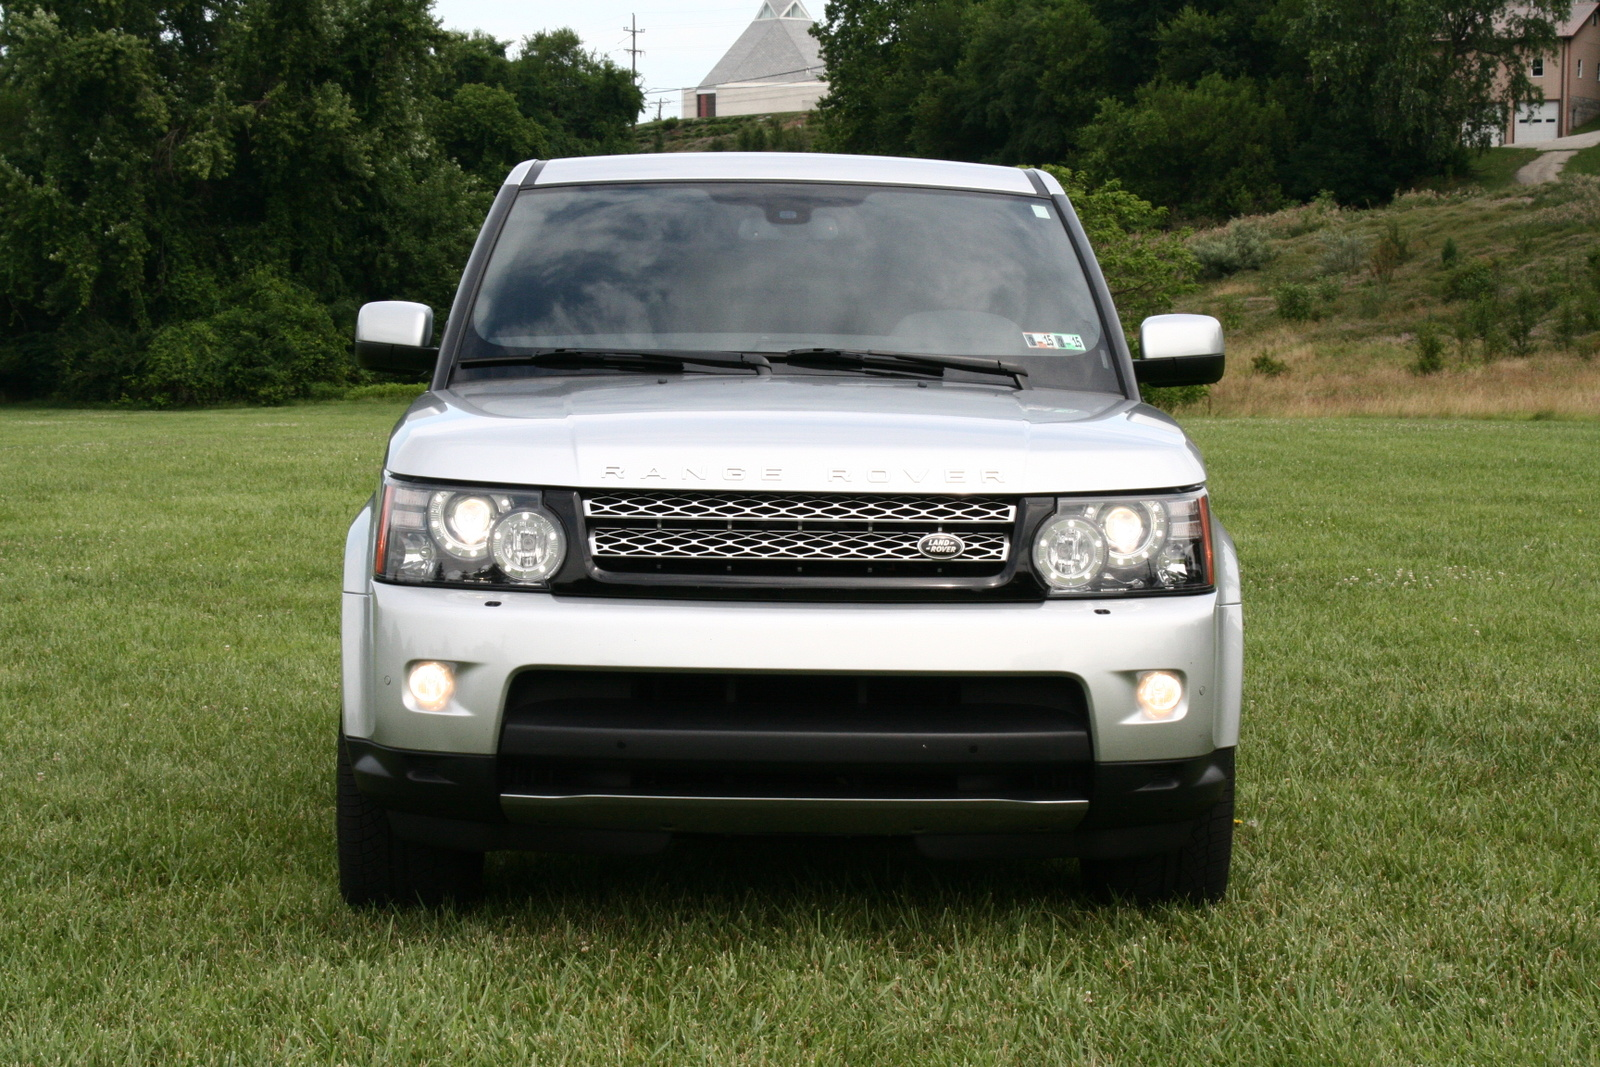 2013 land rover range rover sport reviews pictures and prices u html autos weblog. Black Bedroom Furniture Sets. Home Design Ideas